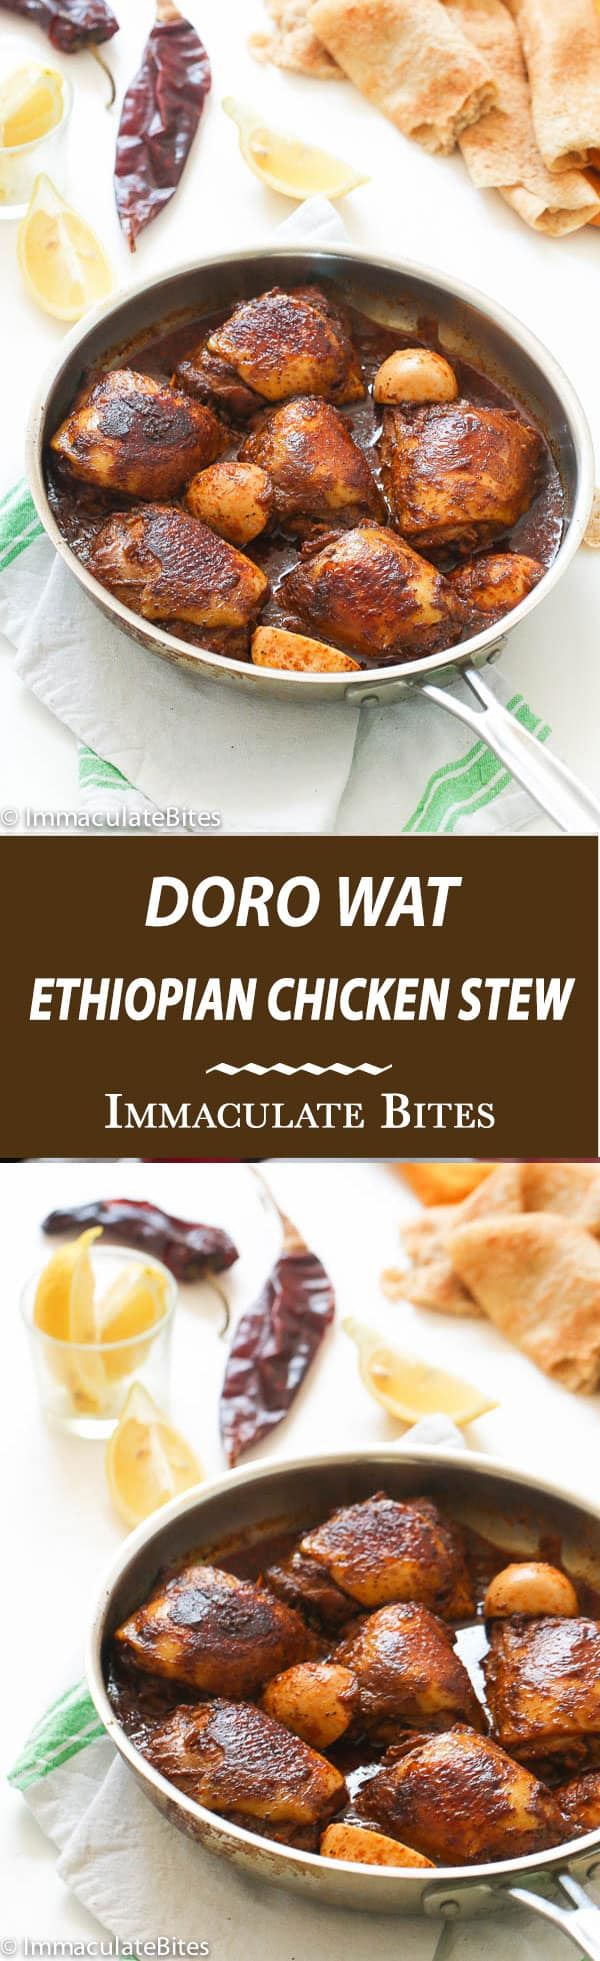 Doro wat ethiopian chicken stew immaculate bites doro wat ethiopian chicken stew slowly simmered in a blend of robust spices forumfinder